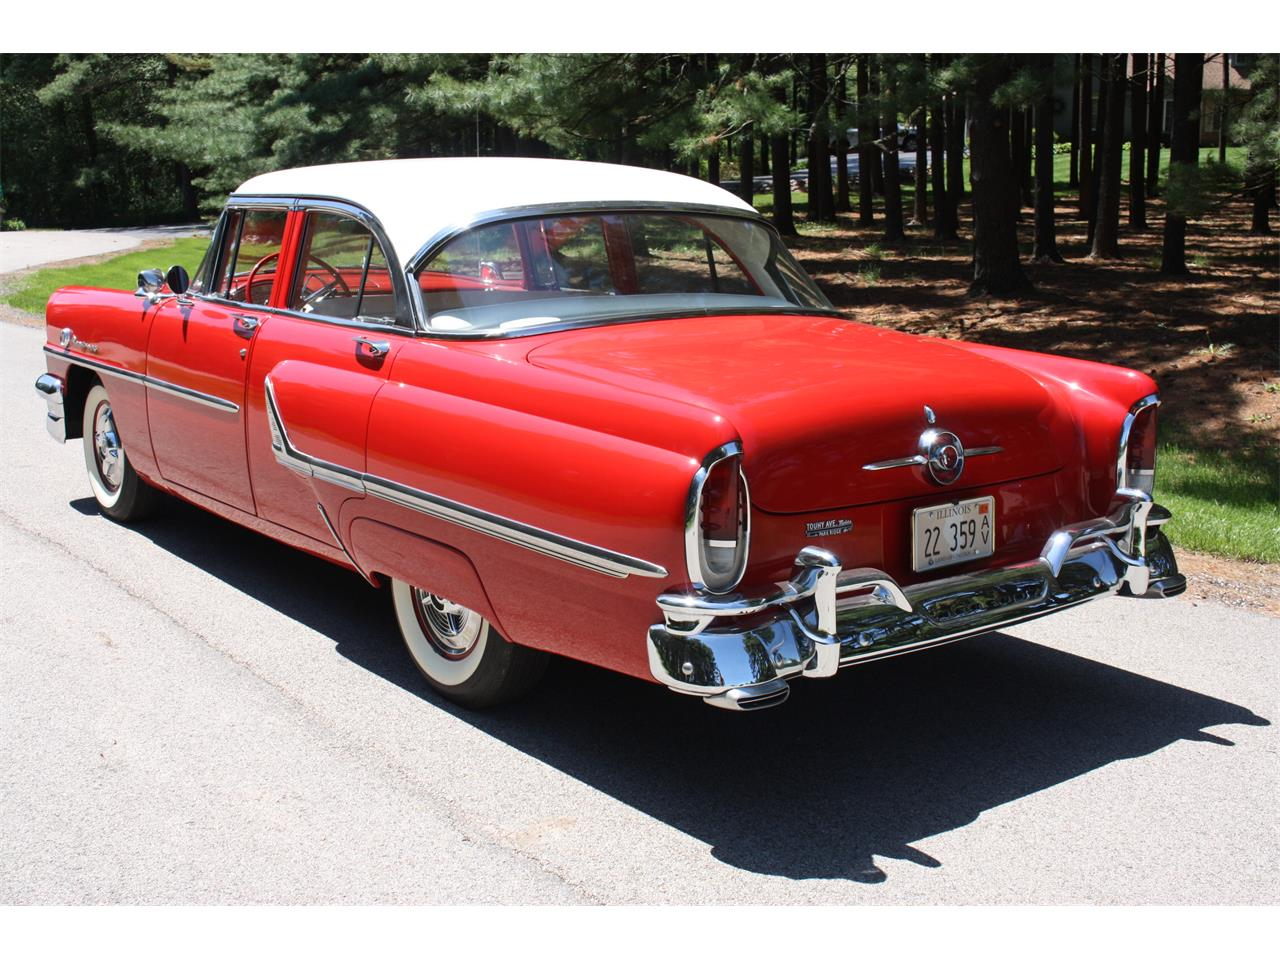 Large Picture of '55 Mercury Monterey located in Woodstock Illinois Auction Vehicle - OD59